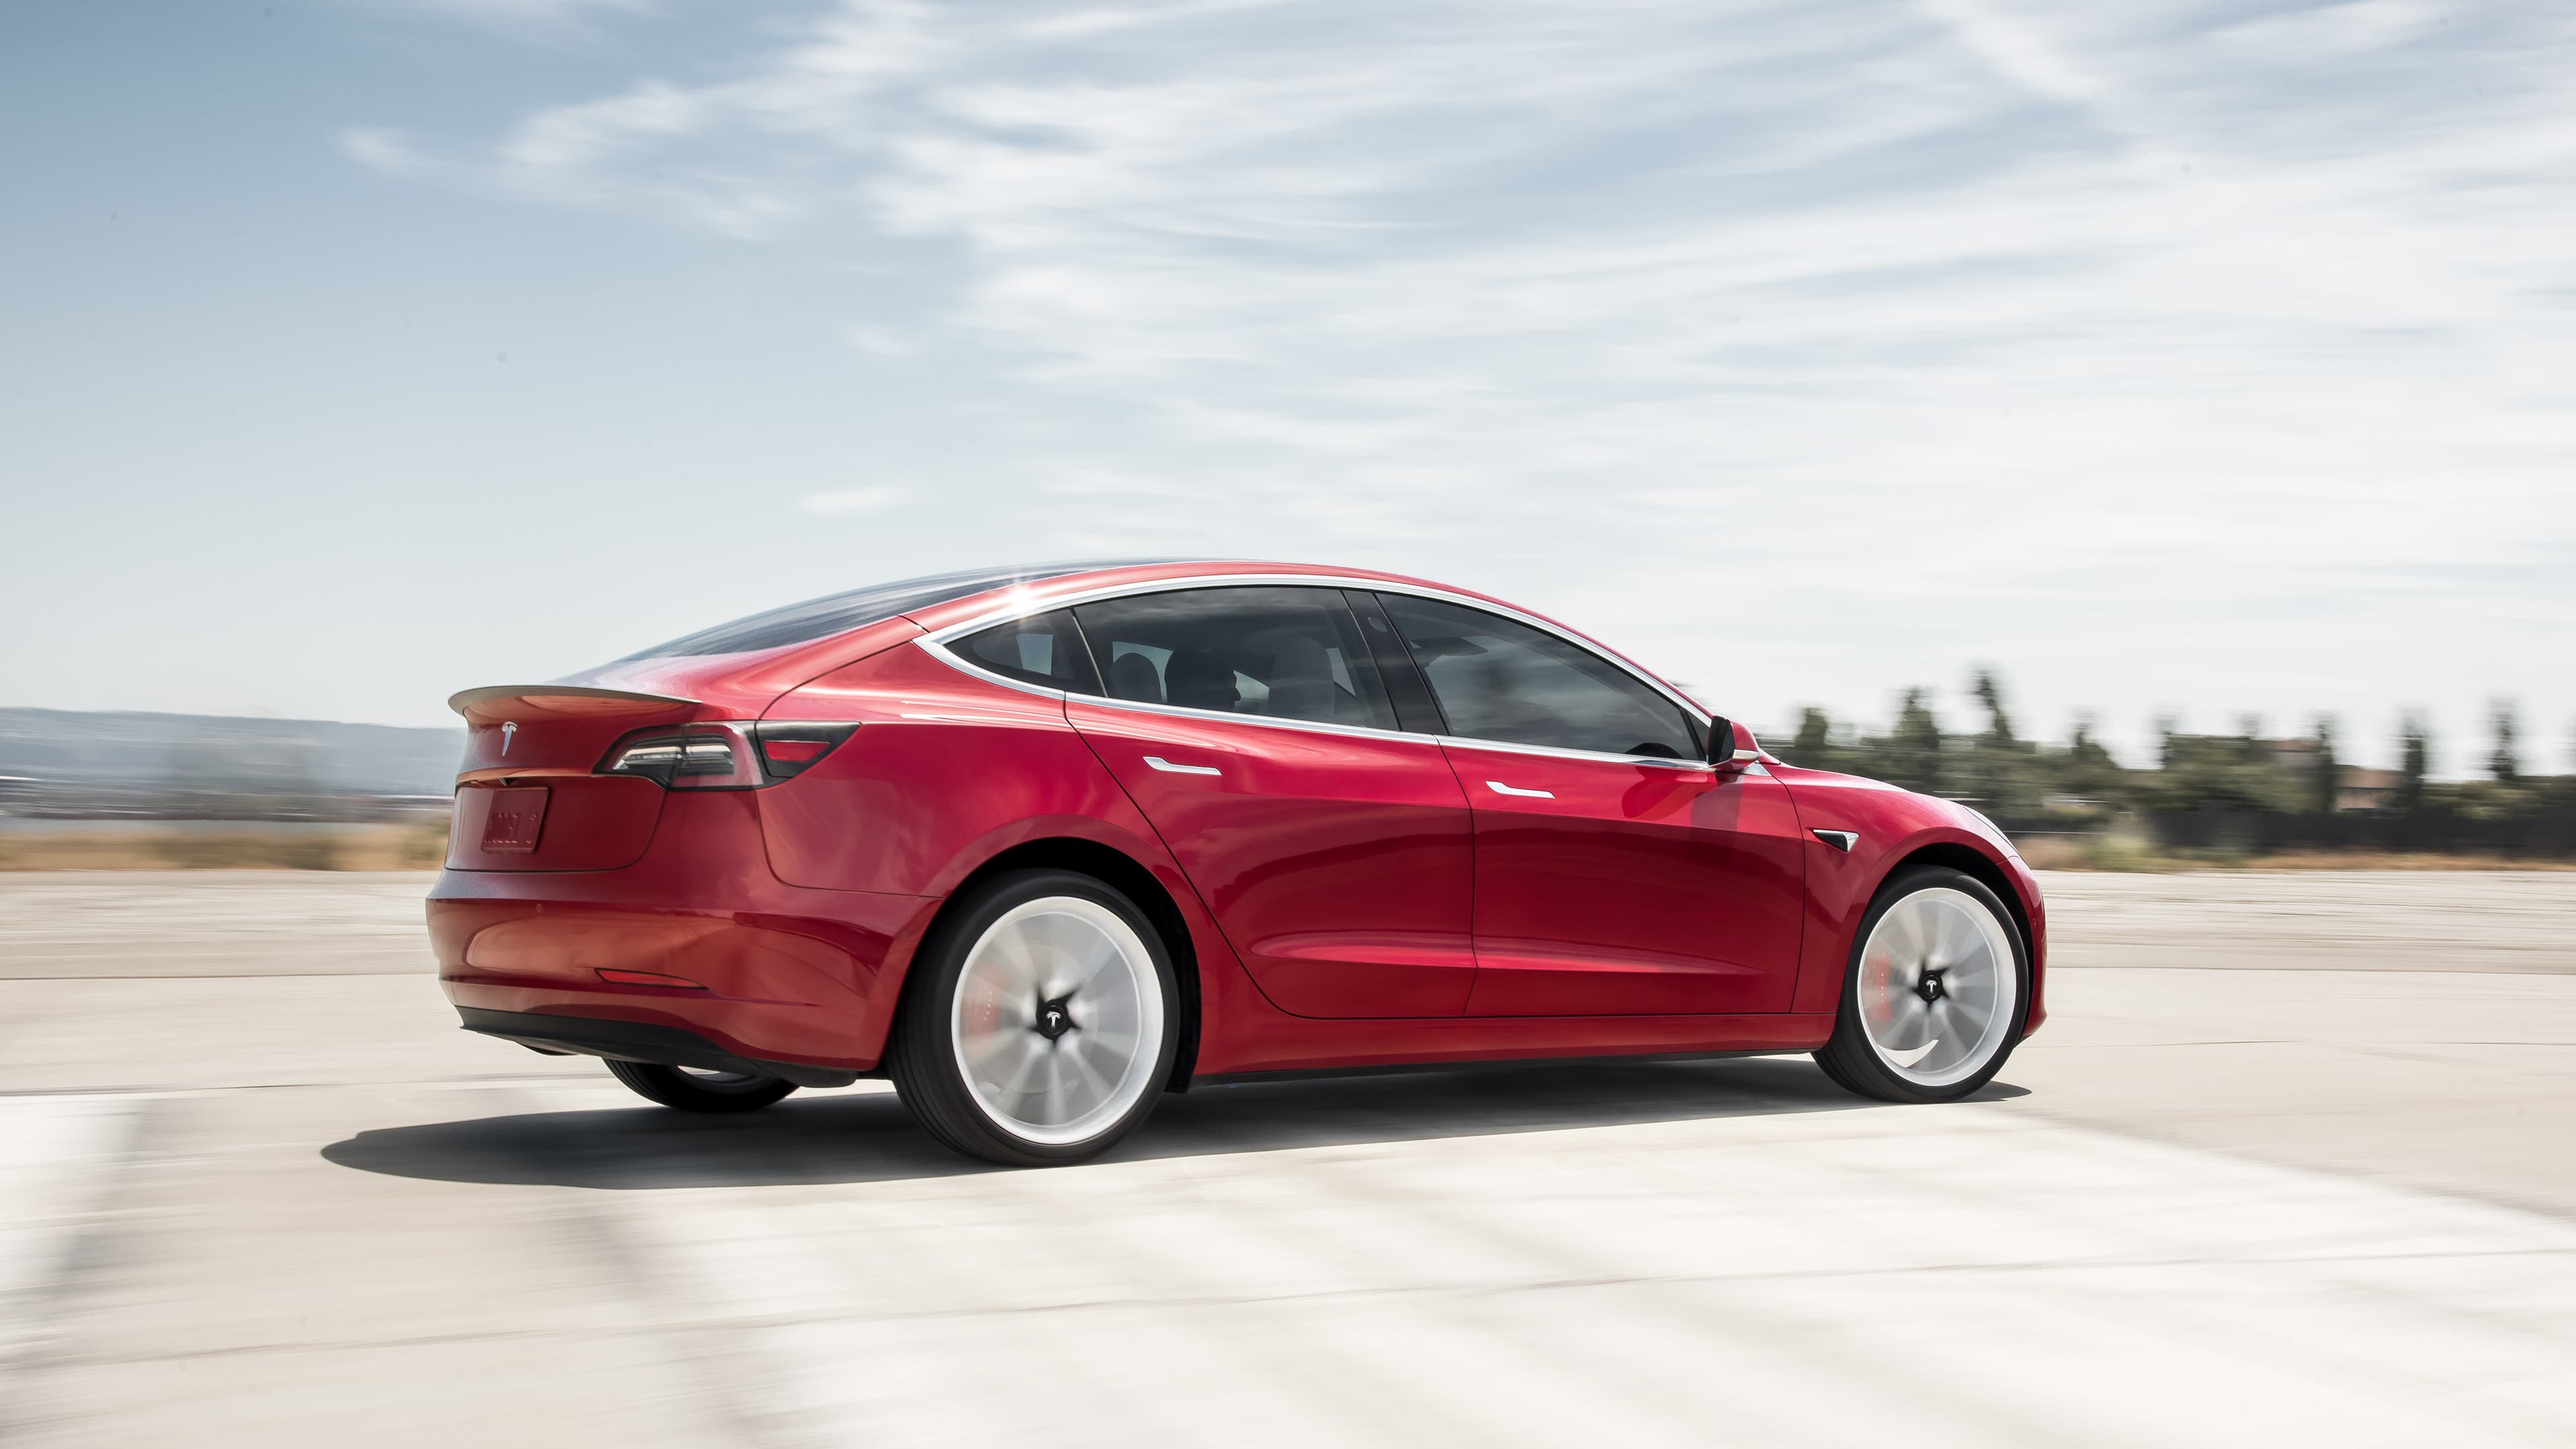 Hundred Miles Behind The Wheel Of Our New Model 3 I Was Eager To Get Some Time In Pit Performance Edition Compare Two